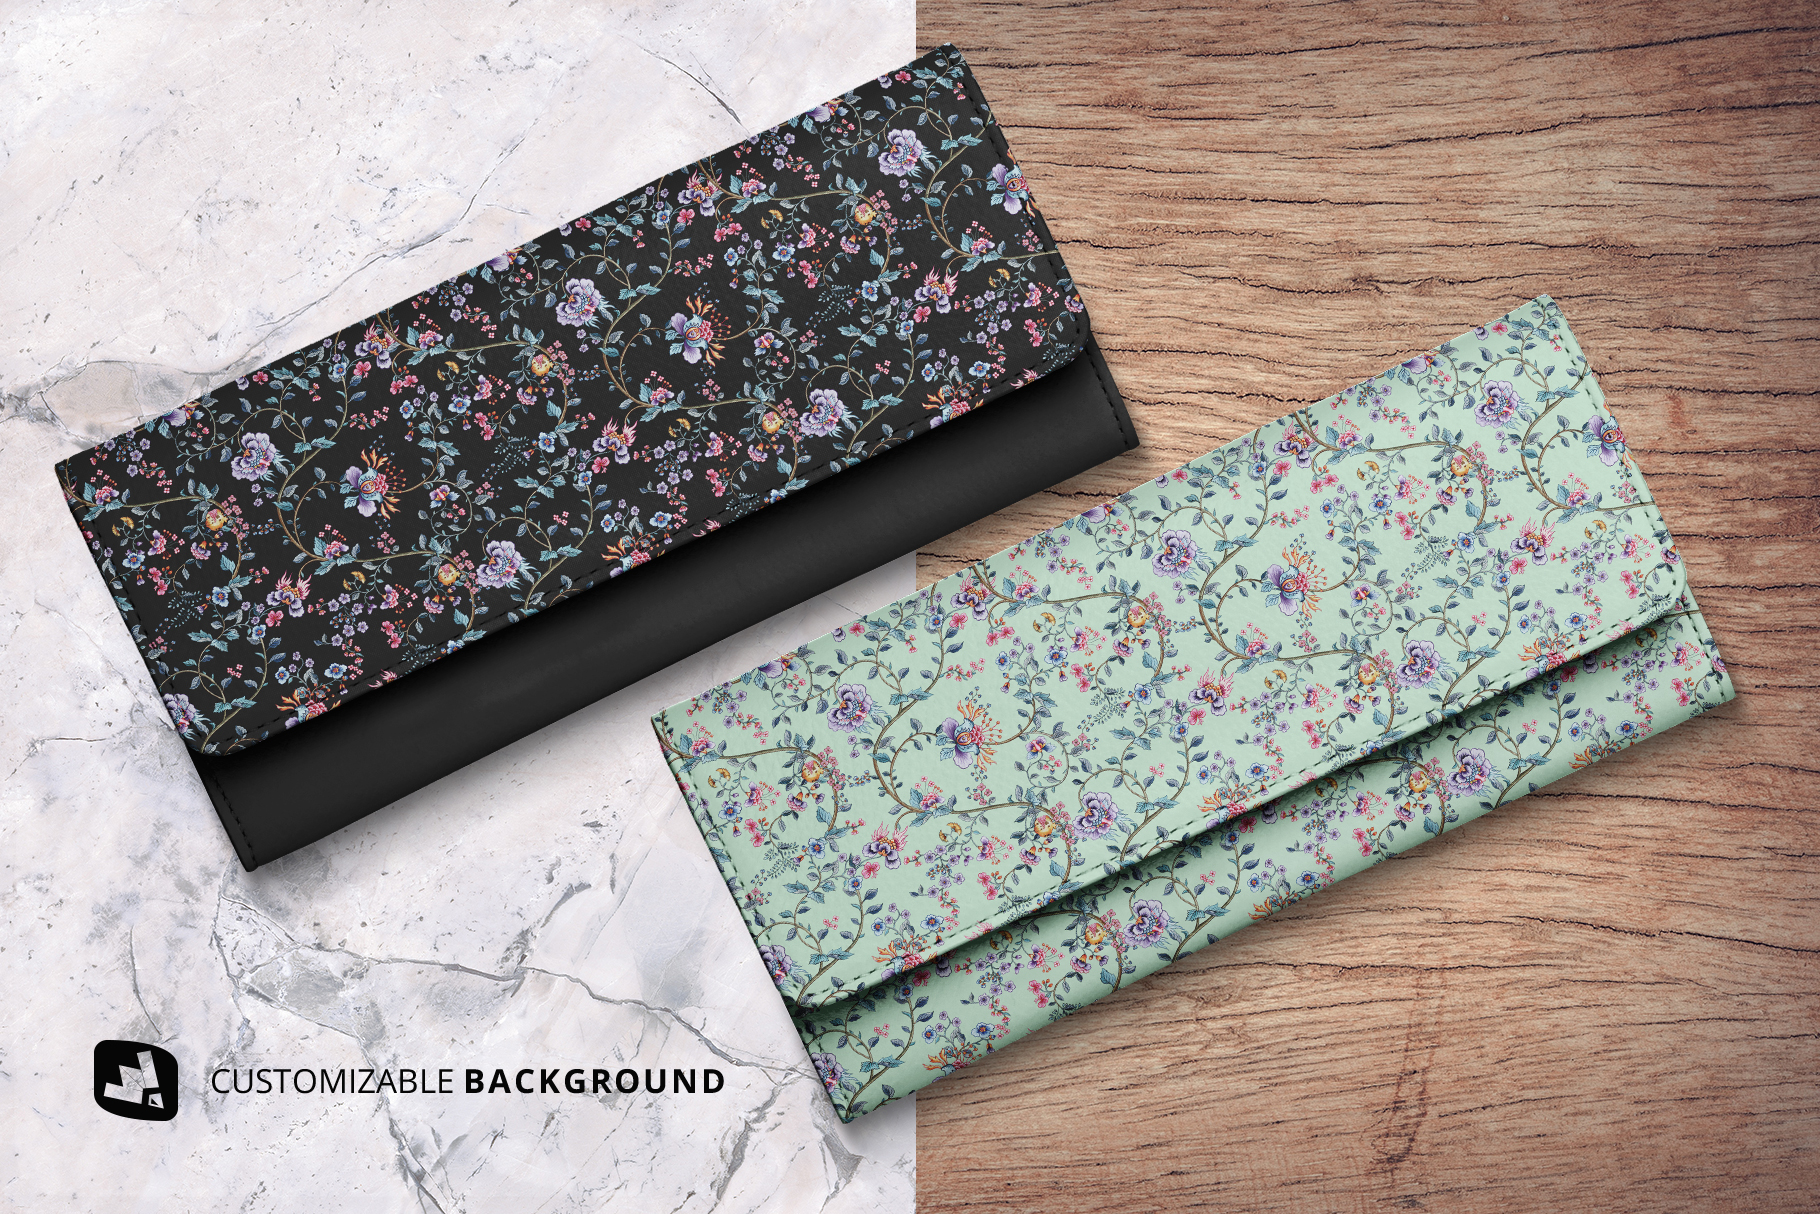 background options of the top view women's purse mockup